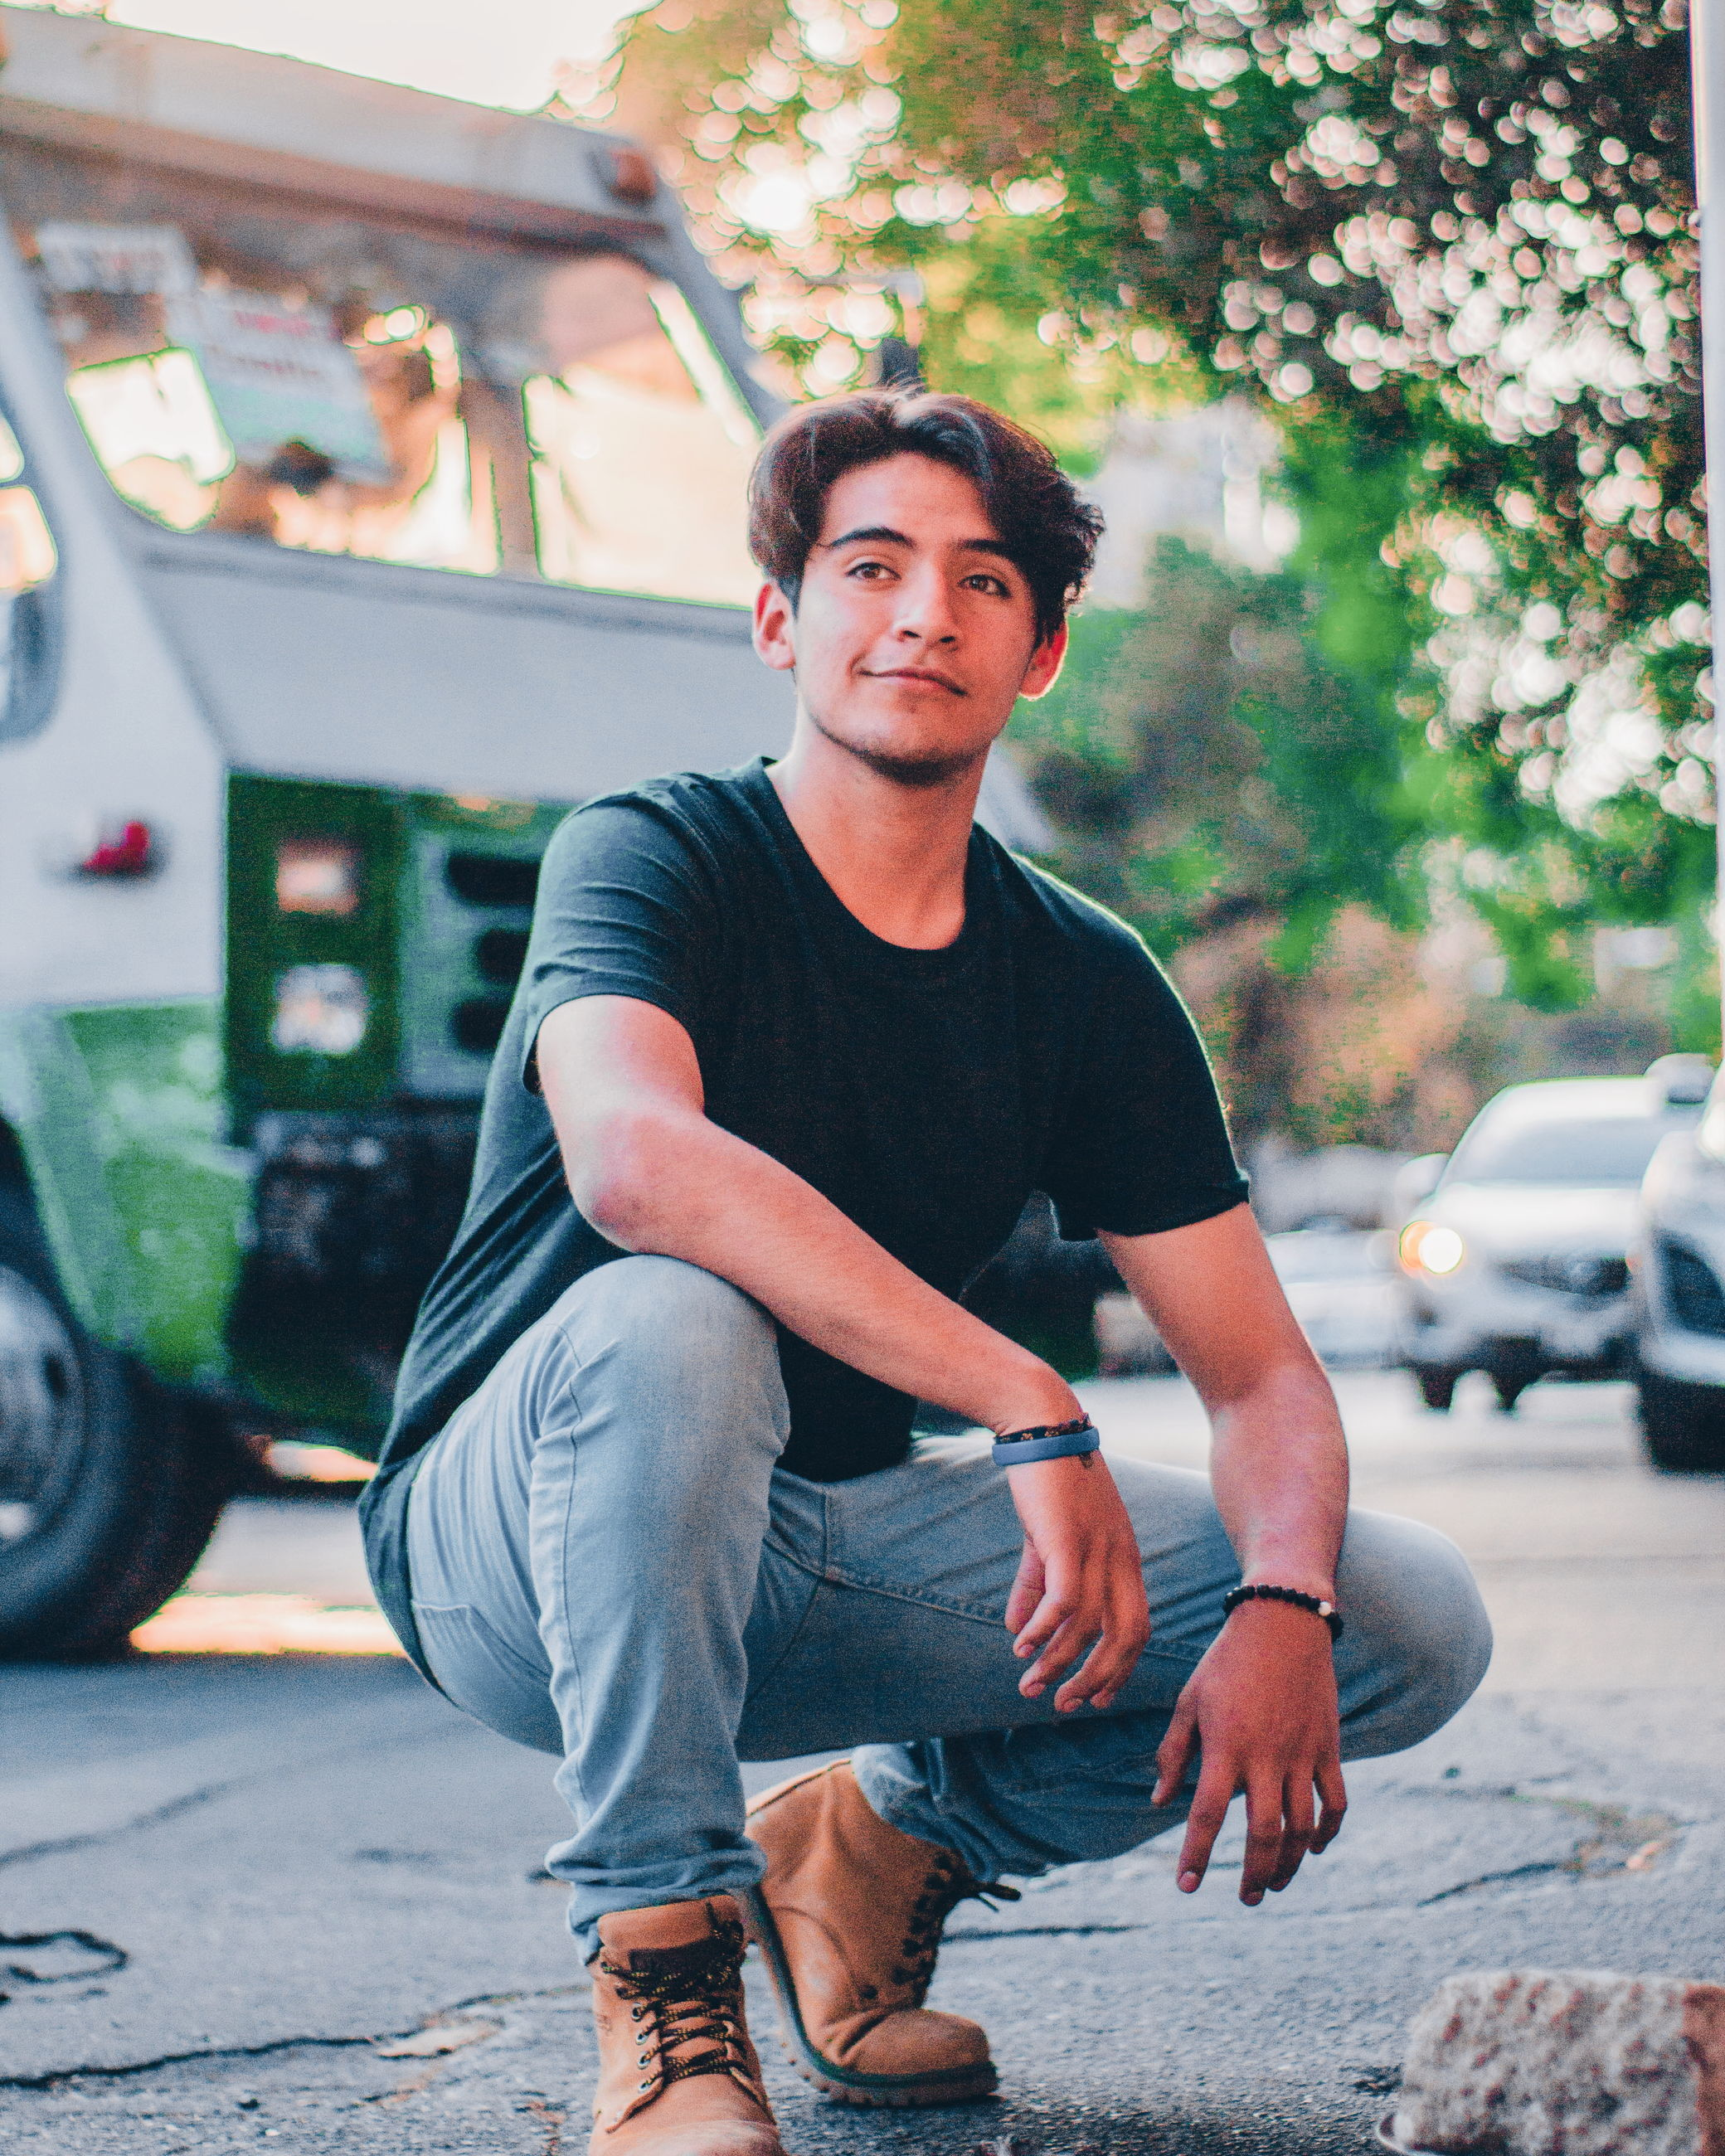 one person, casual clothing, real people, looking at camera, full length, transportation, mode of transportation, young adult, young men, portrait, day, lifestyles, land vehicle, sitting, front view, men, leisure activity, city, outdoors